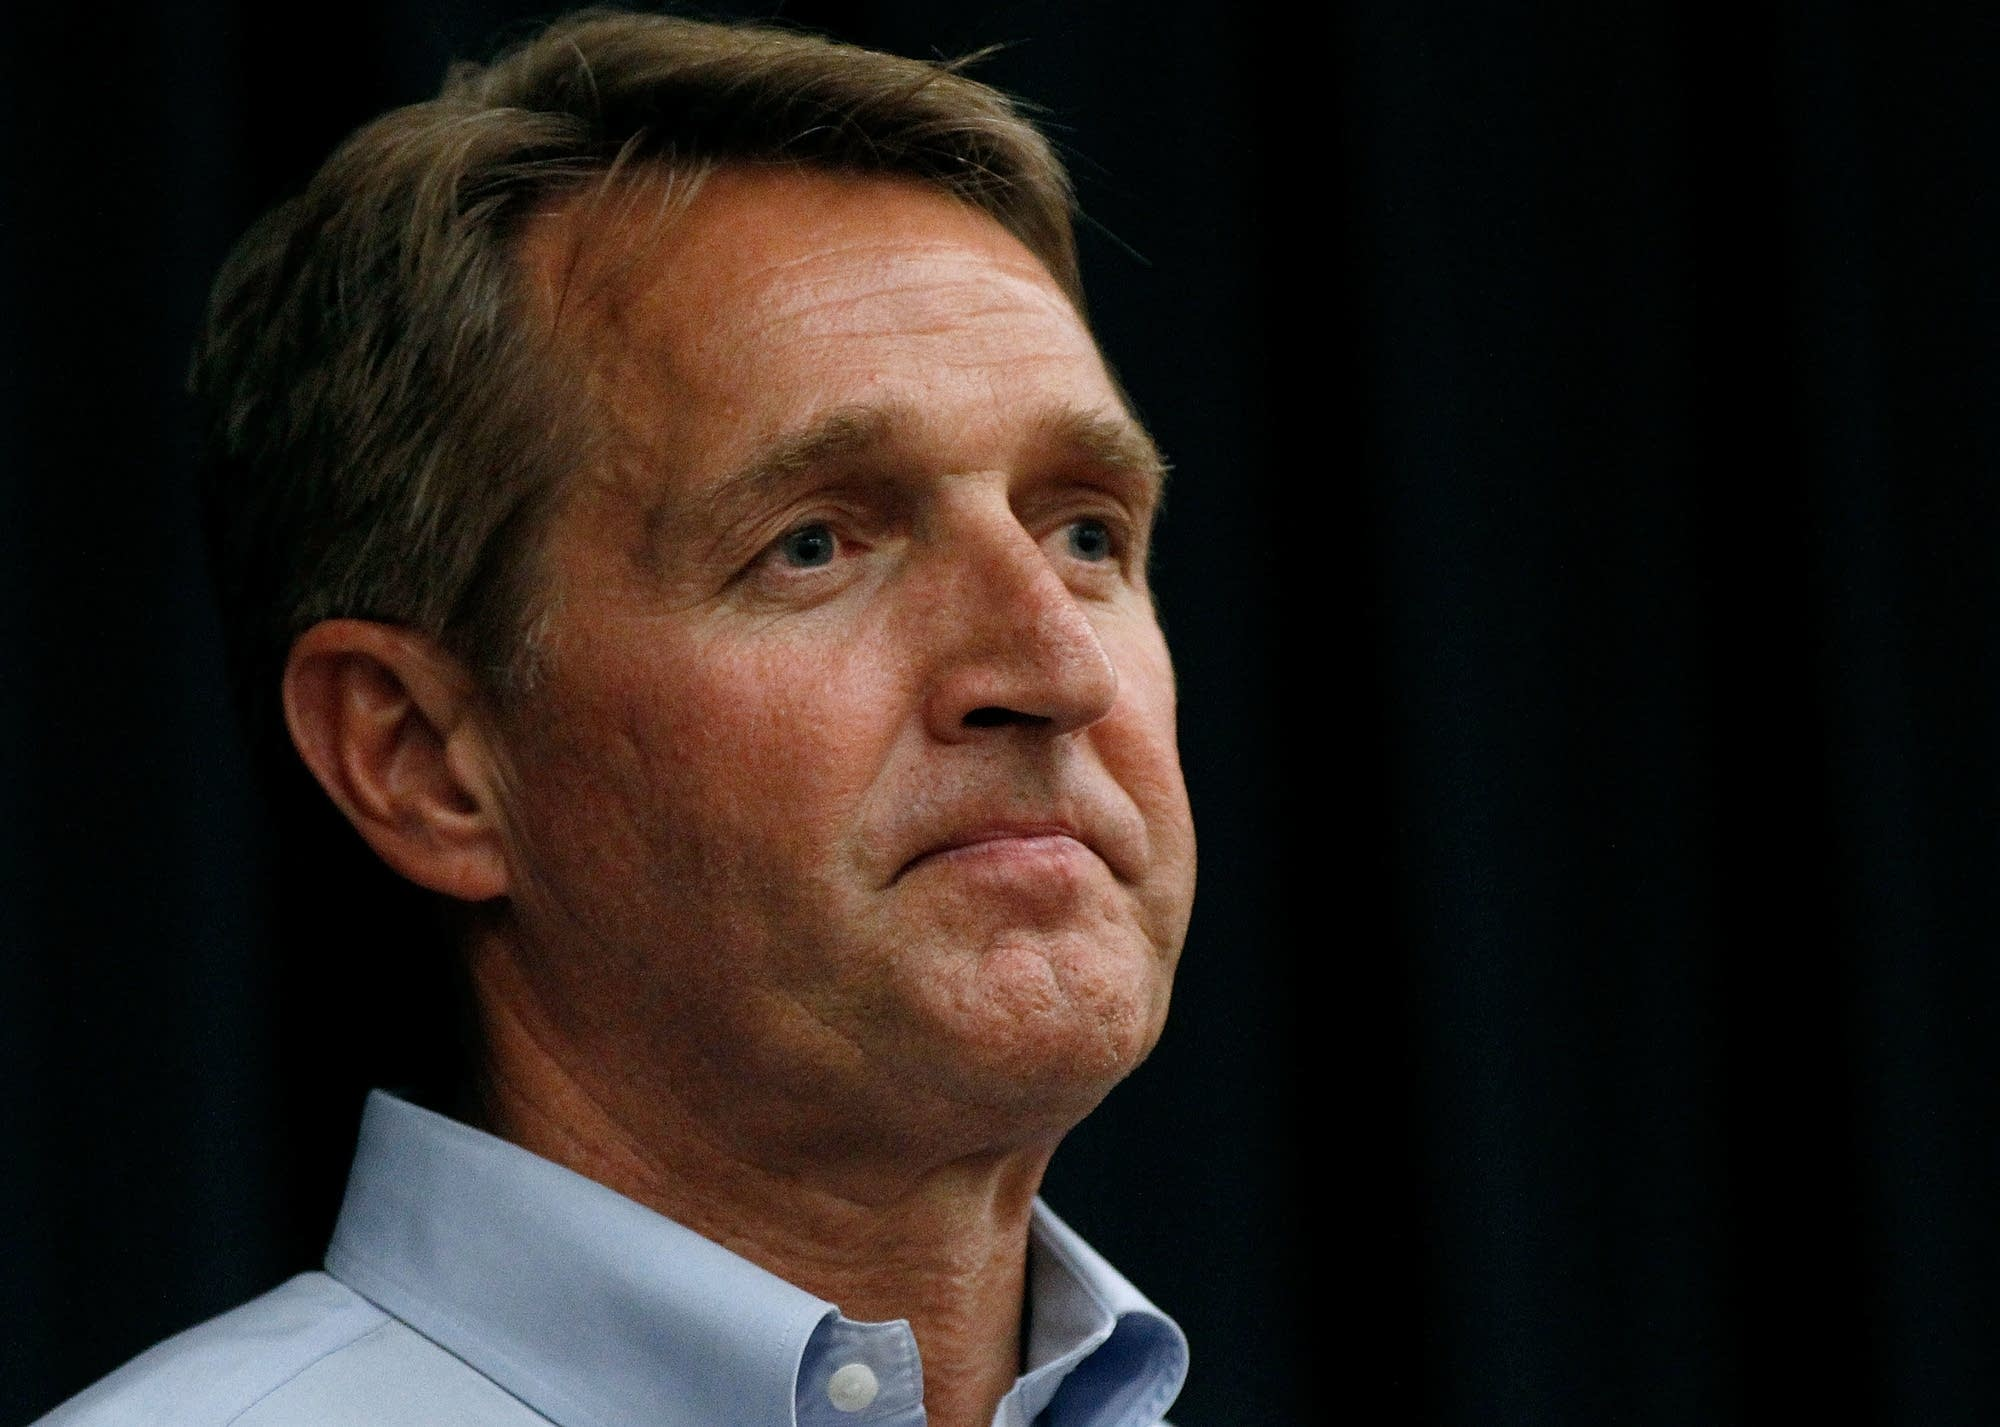 Flake renews criticism of Trump, party on eve of New Hampshire speech